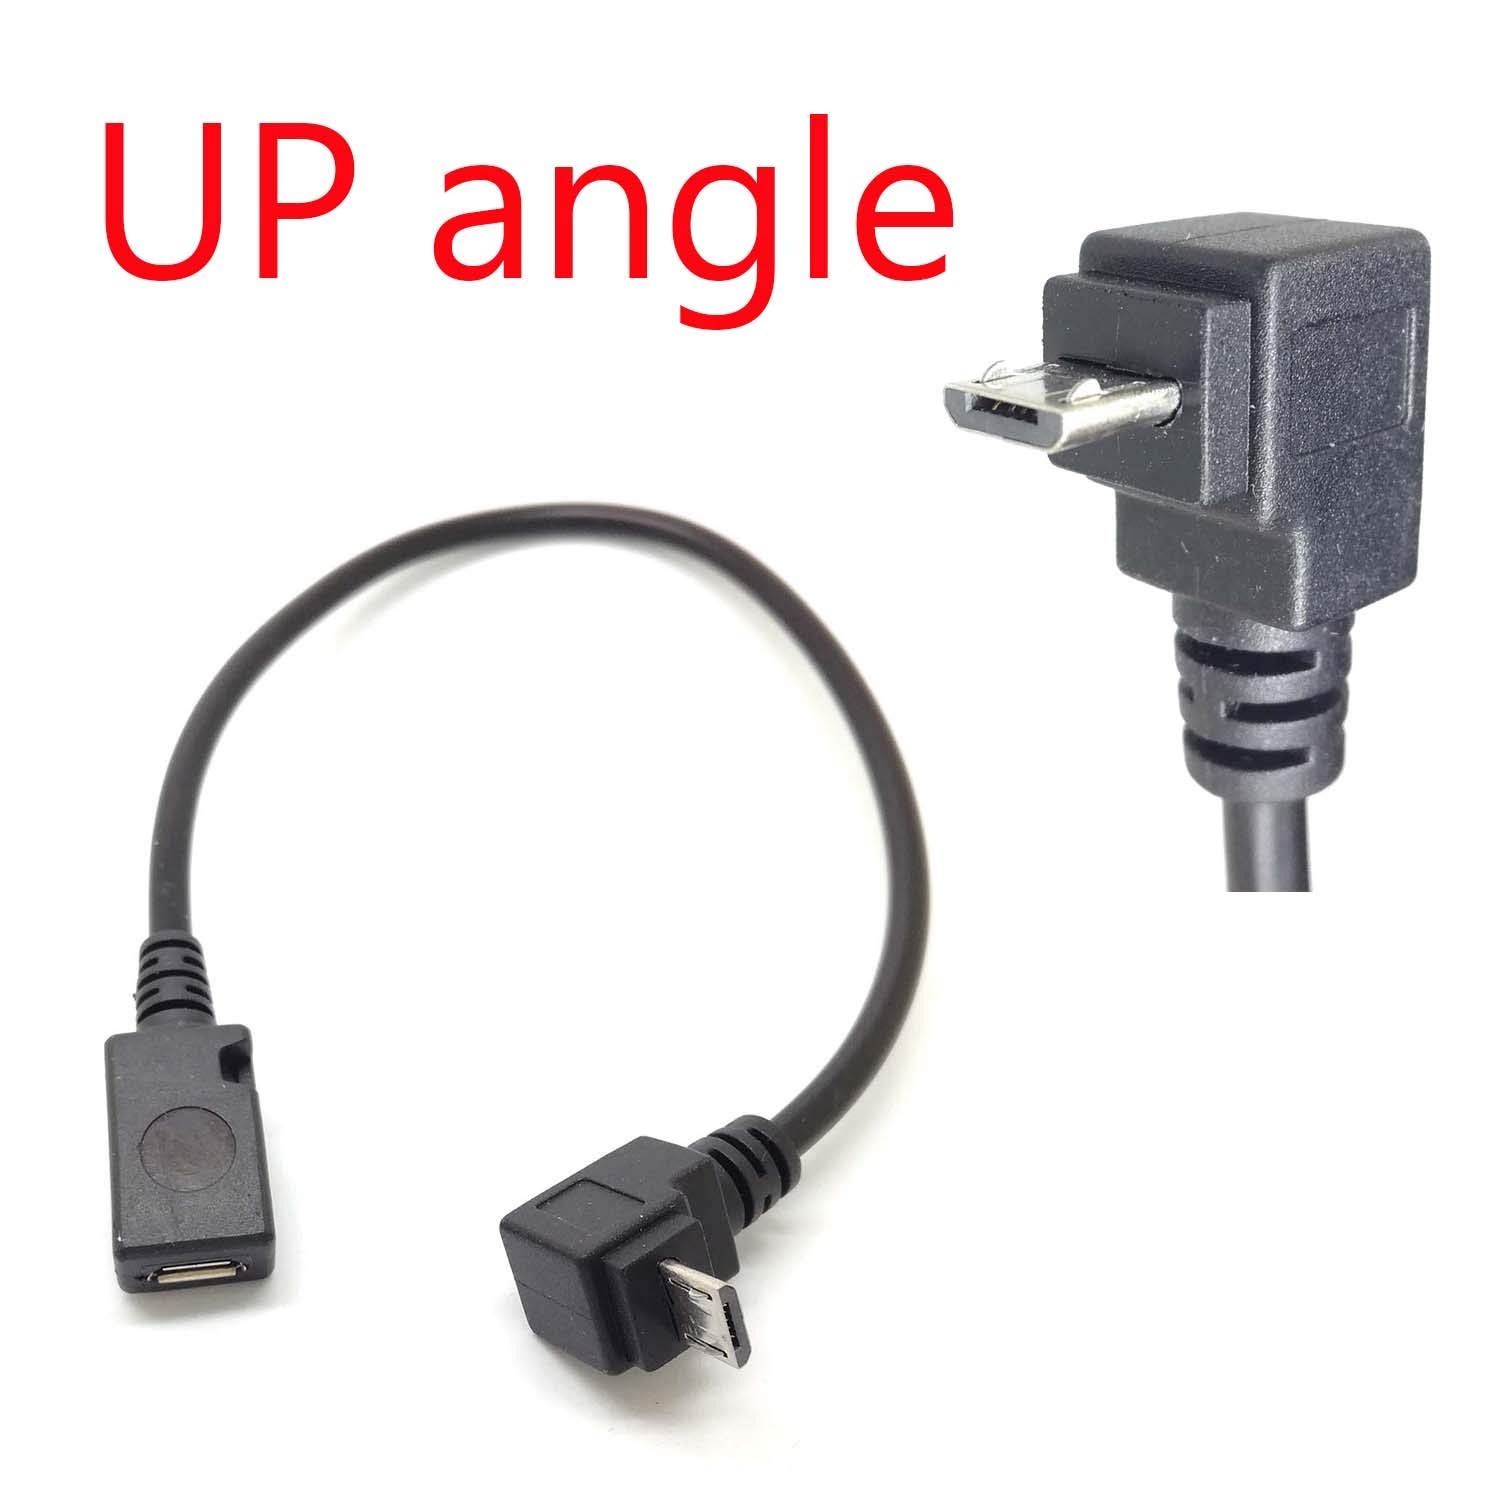 90/° Degree Angle USB Micro B 5P Female to 5P Male Left Right Down Up Angled Extension Cable Adapter for Phone Charger Data Sync Tablet Cord Adaptor /… up Angle